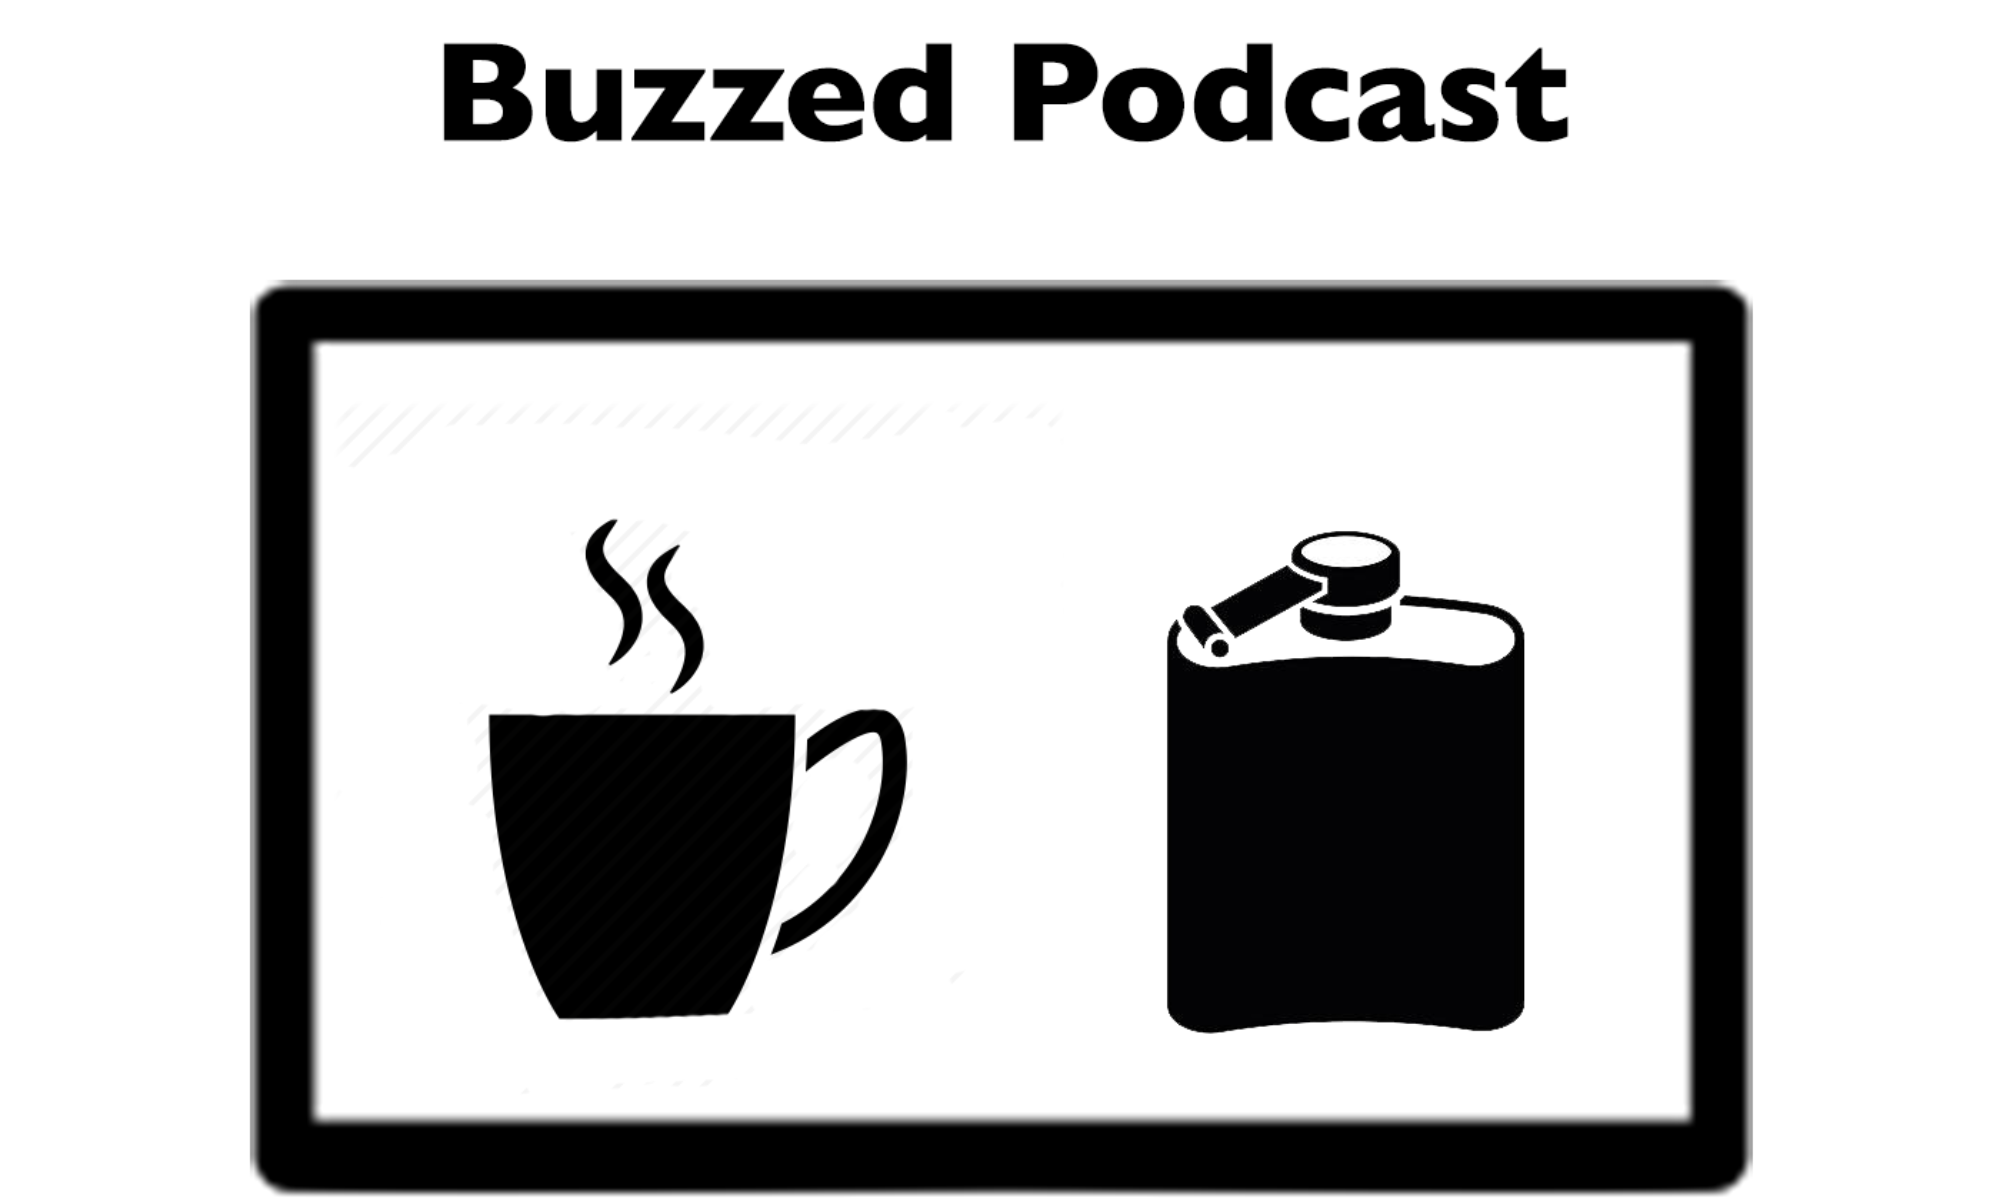 Buzzed Podcast